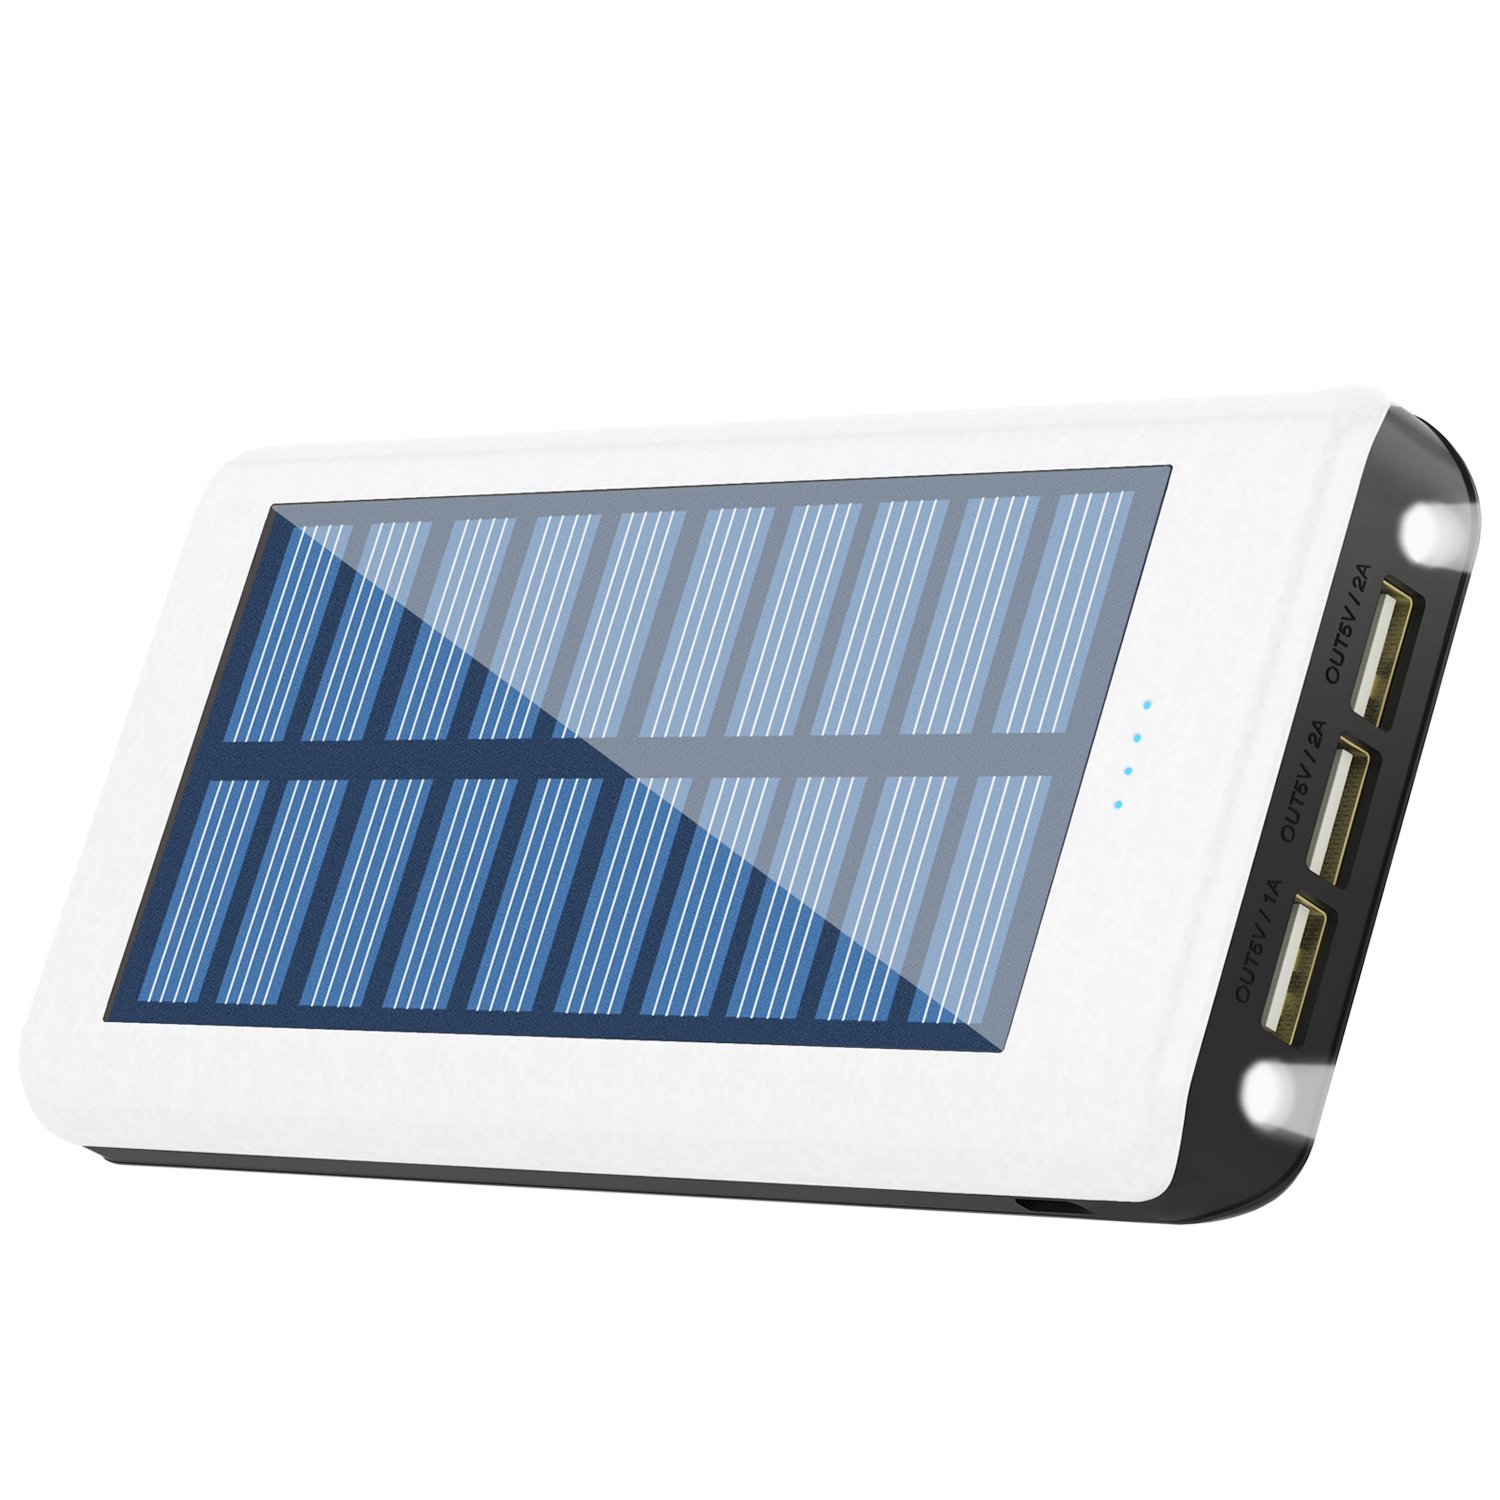 HuaF Solar Charger 24000mah Portable Charger Power Bank 3 USB Ports(1A+2A+2A) Backup Battery for iPhone iPad Samsung HTC Cellphones Tablet and More HF